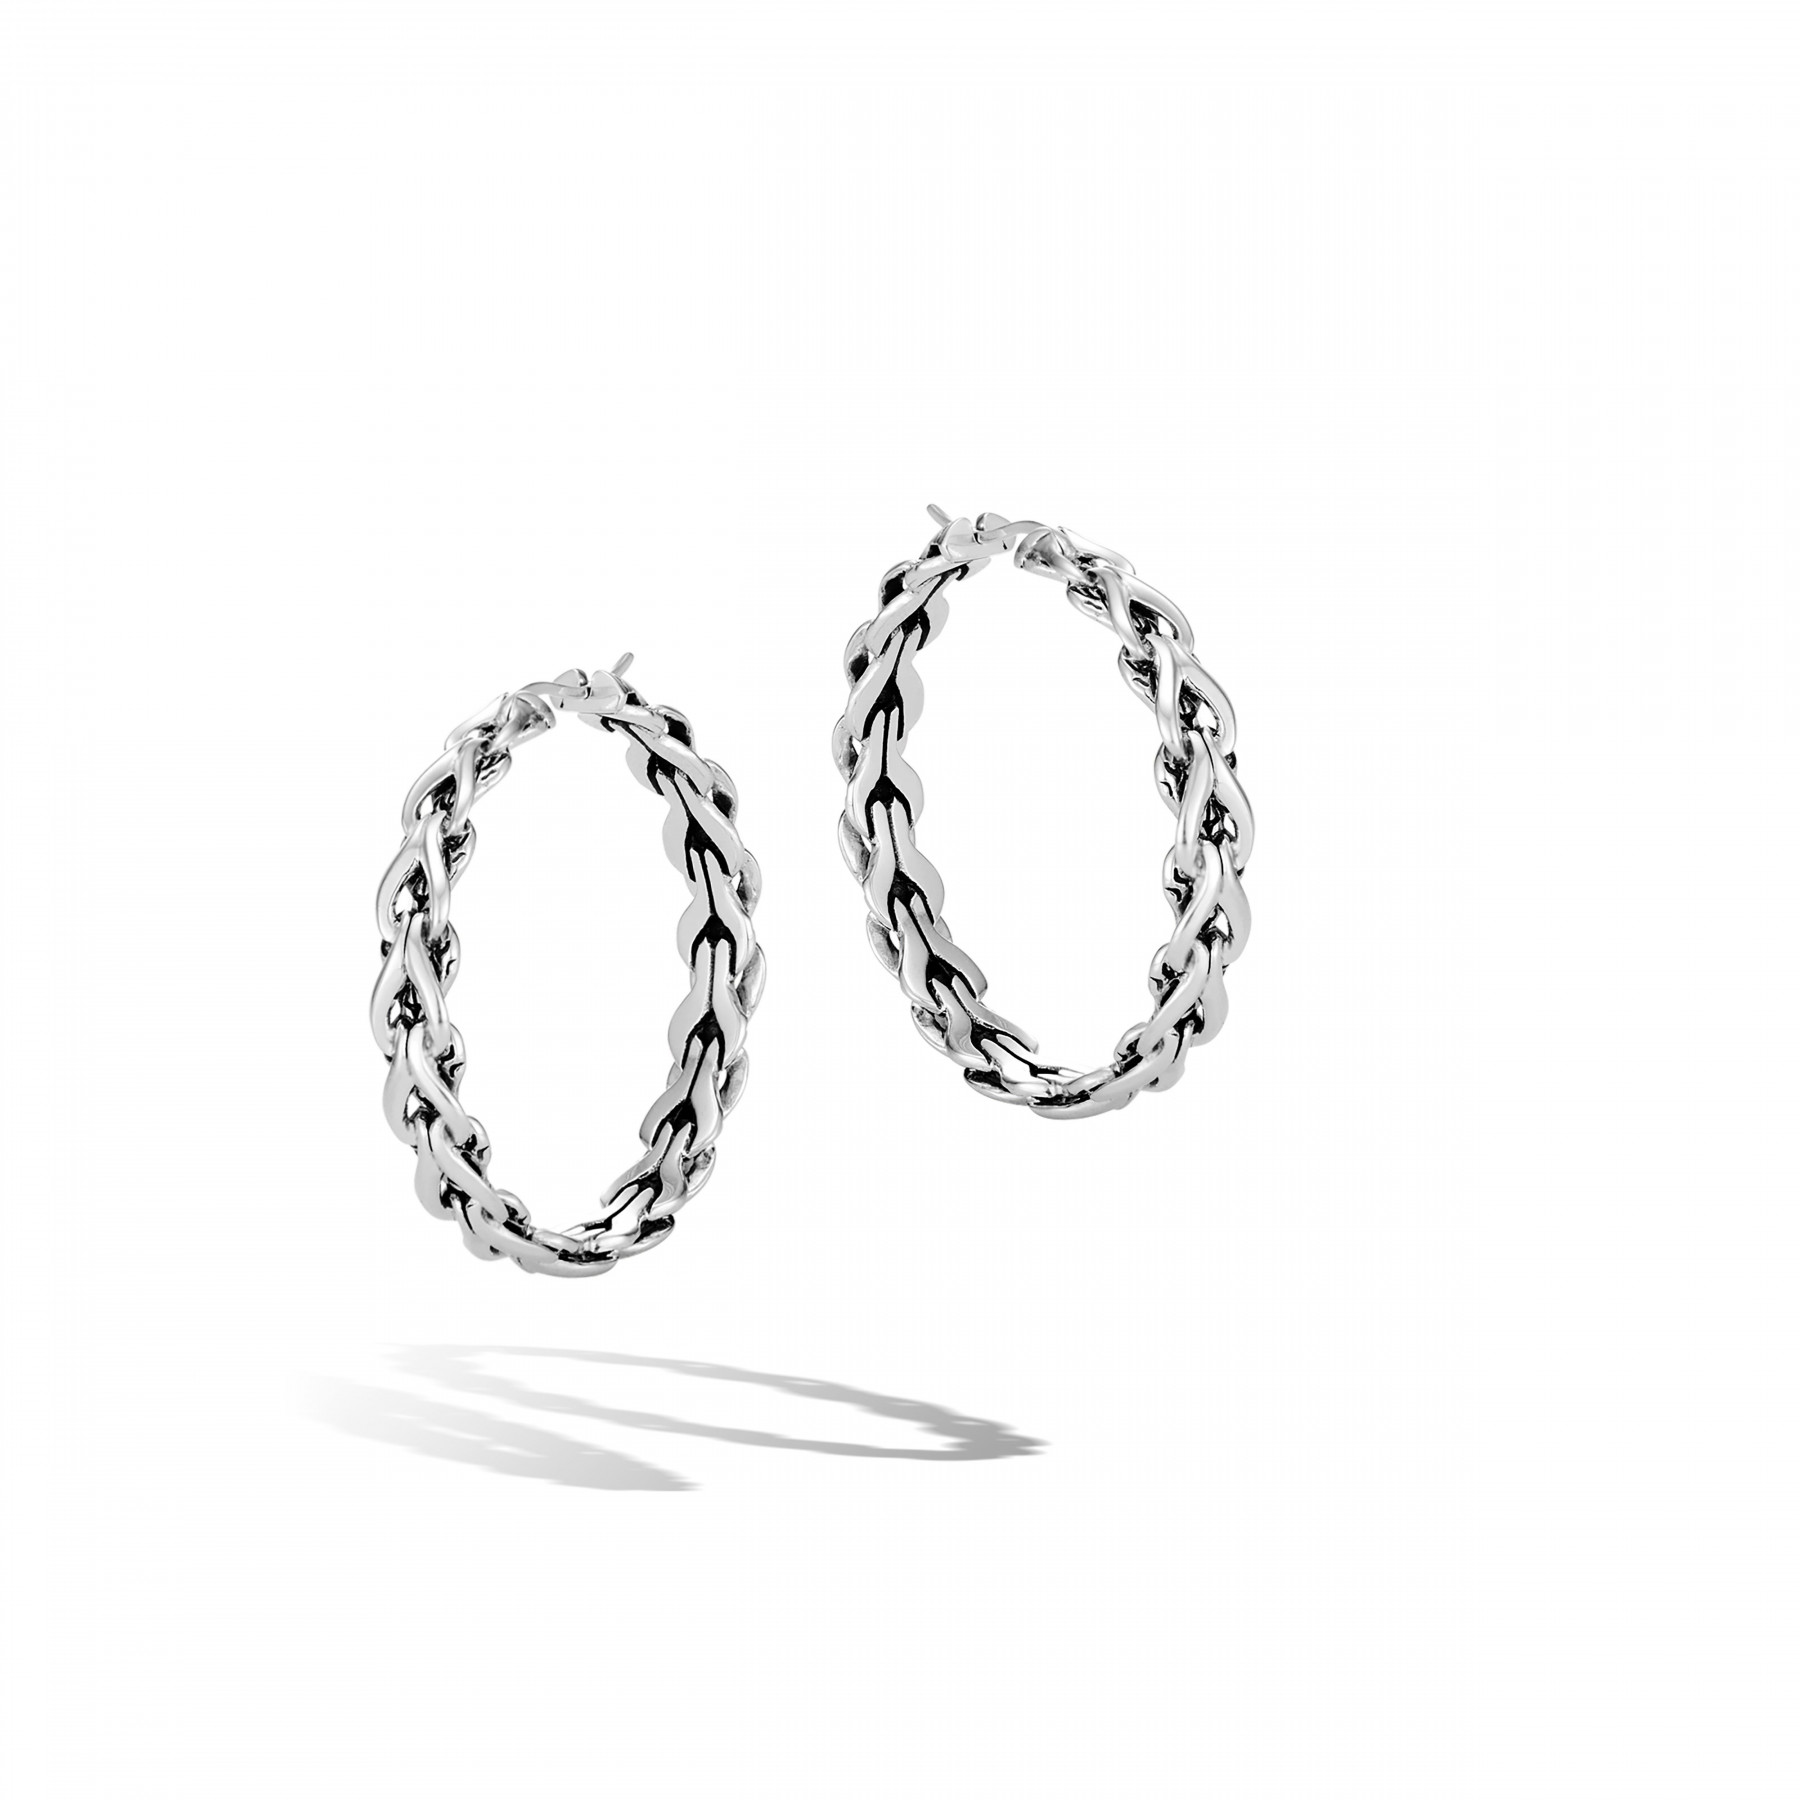 John Hardy Asli Classic Chain Link Hoop Earrings